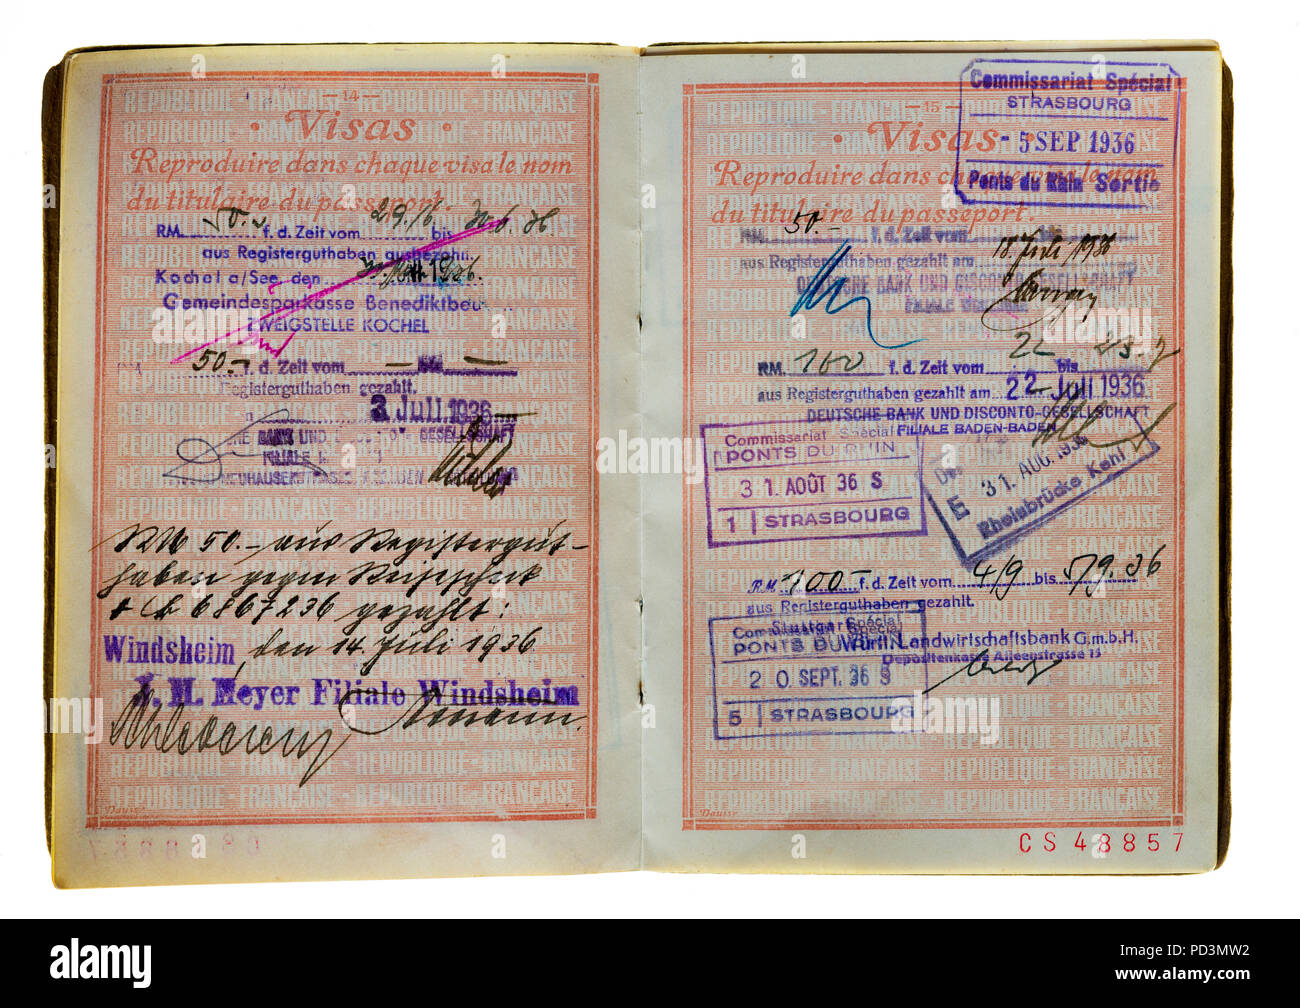 1935's vintage French passport, pages with 1936 German and French visas stamps marks, - Stock Image